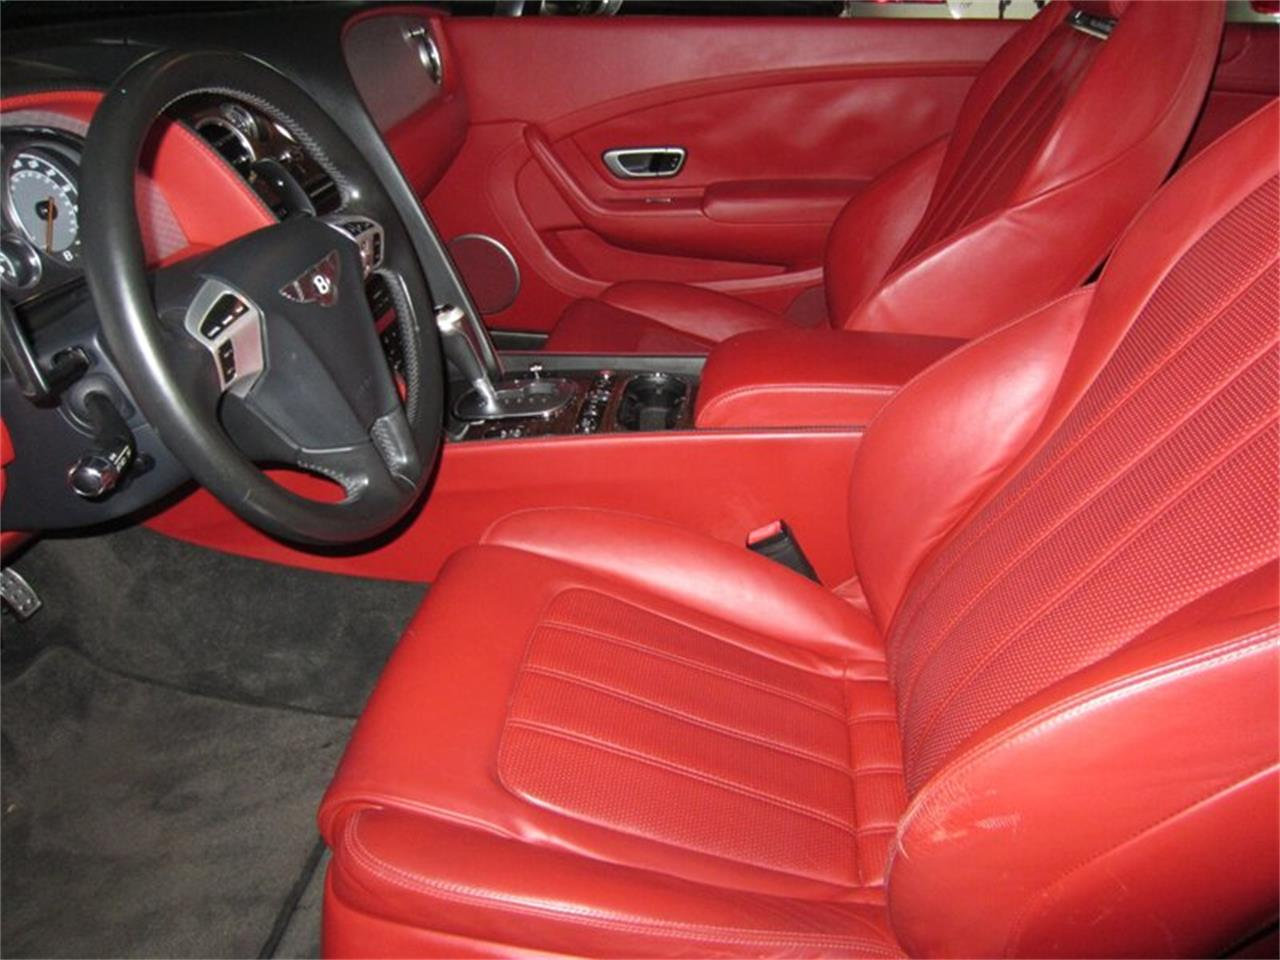 2013 Bentley Continental GTC V8 for sale in Delray Beach, FL – photo 9